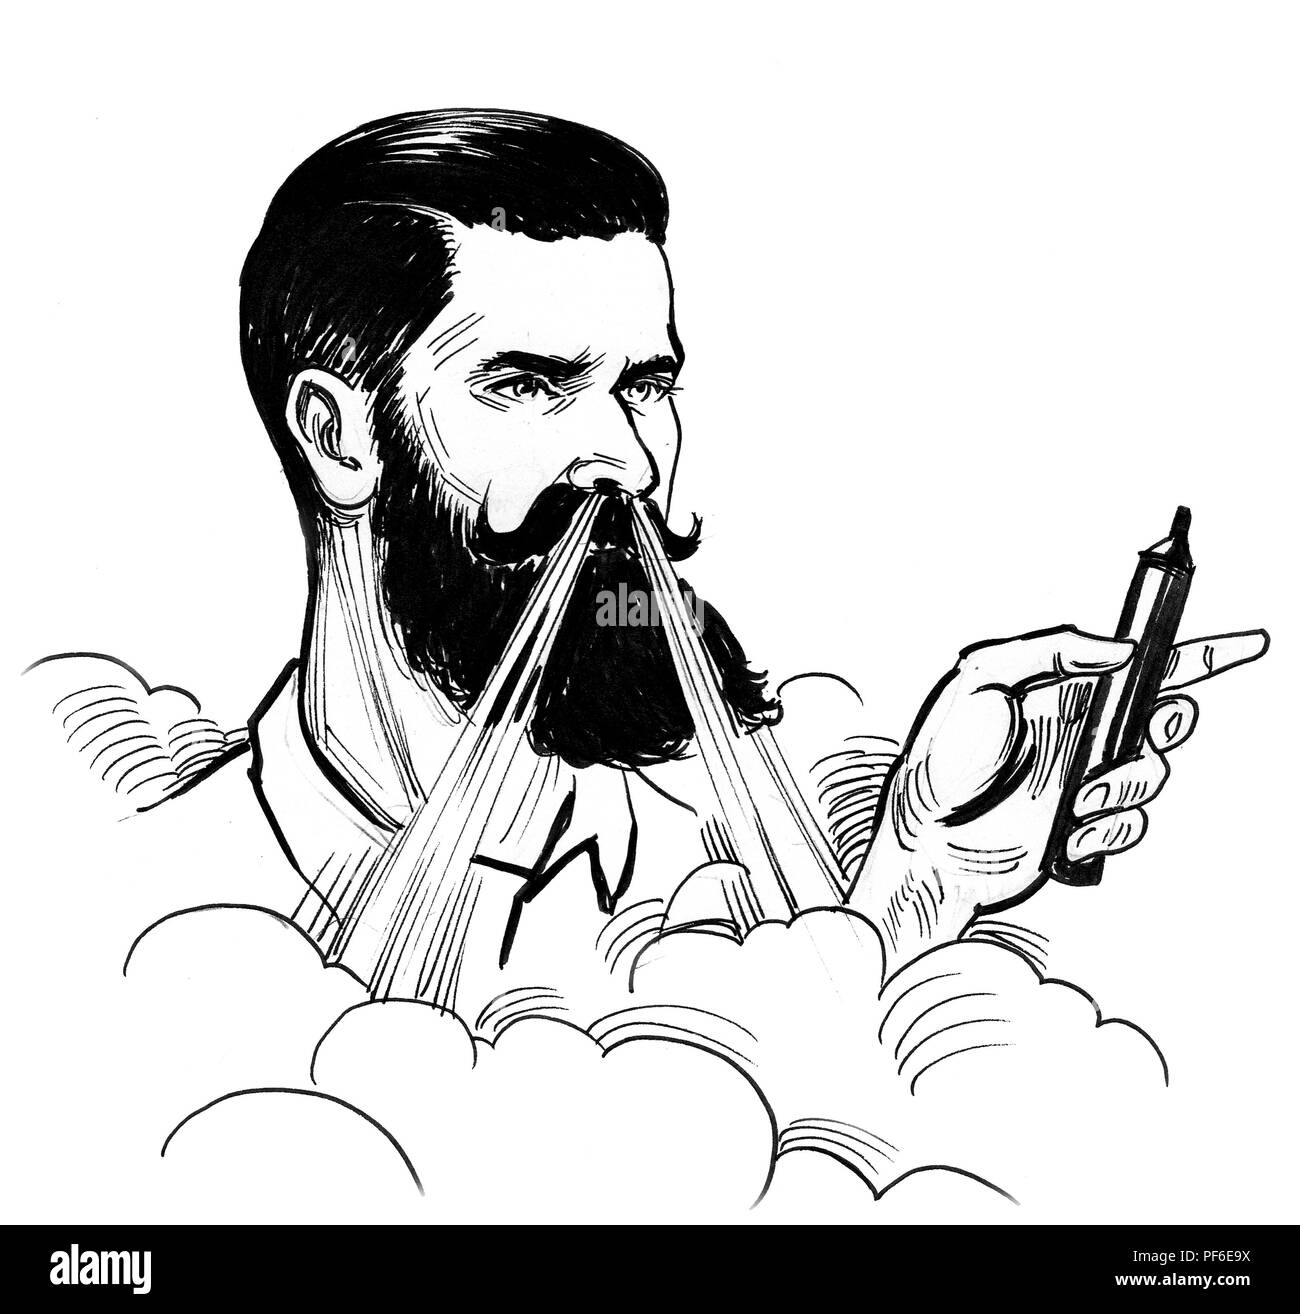 Bearded man with a vaporizer. Ink black and white illustration Stock Photo